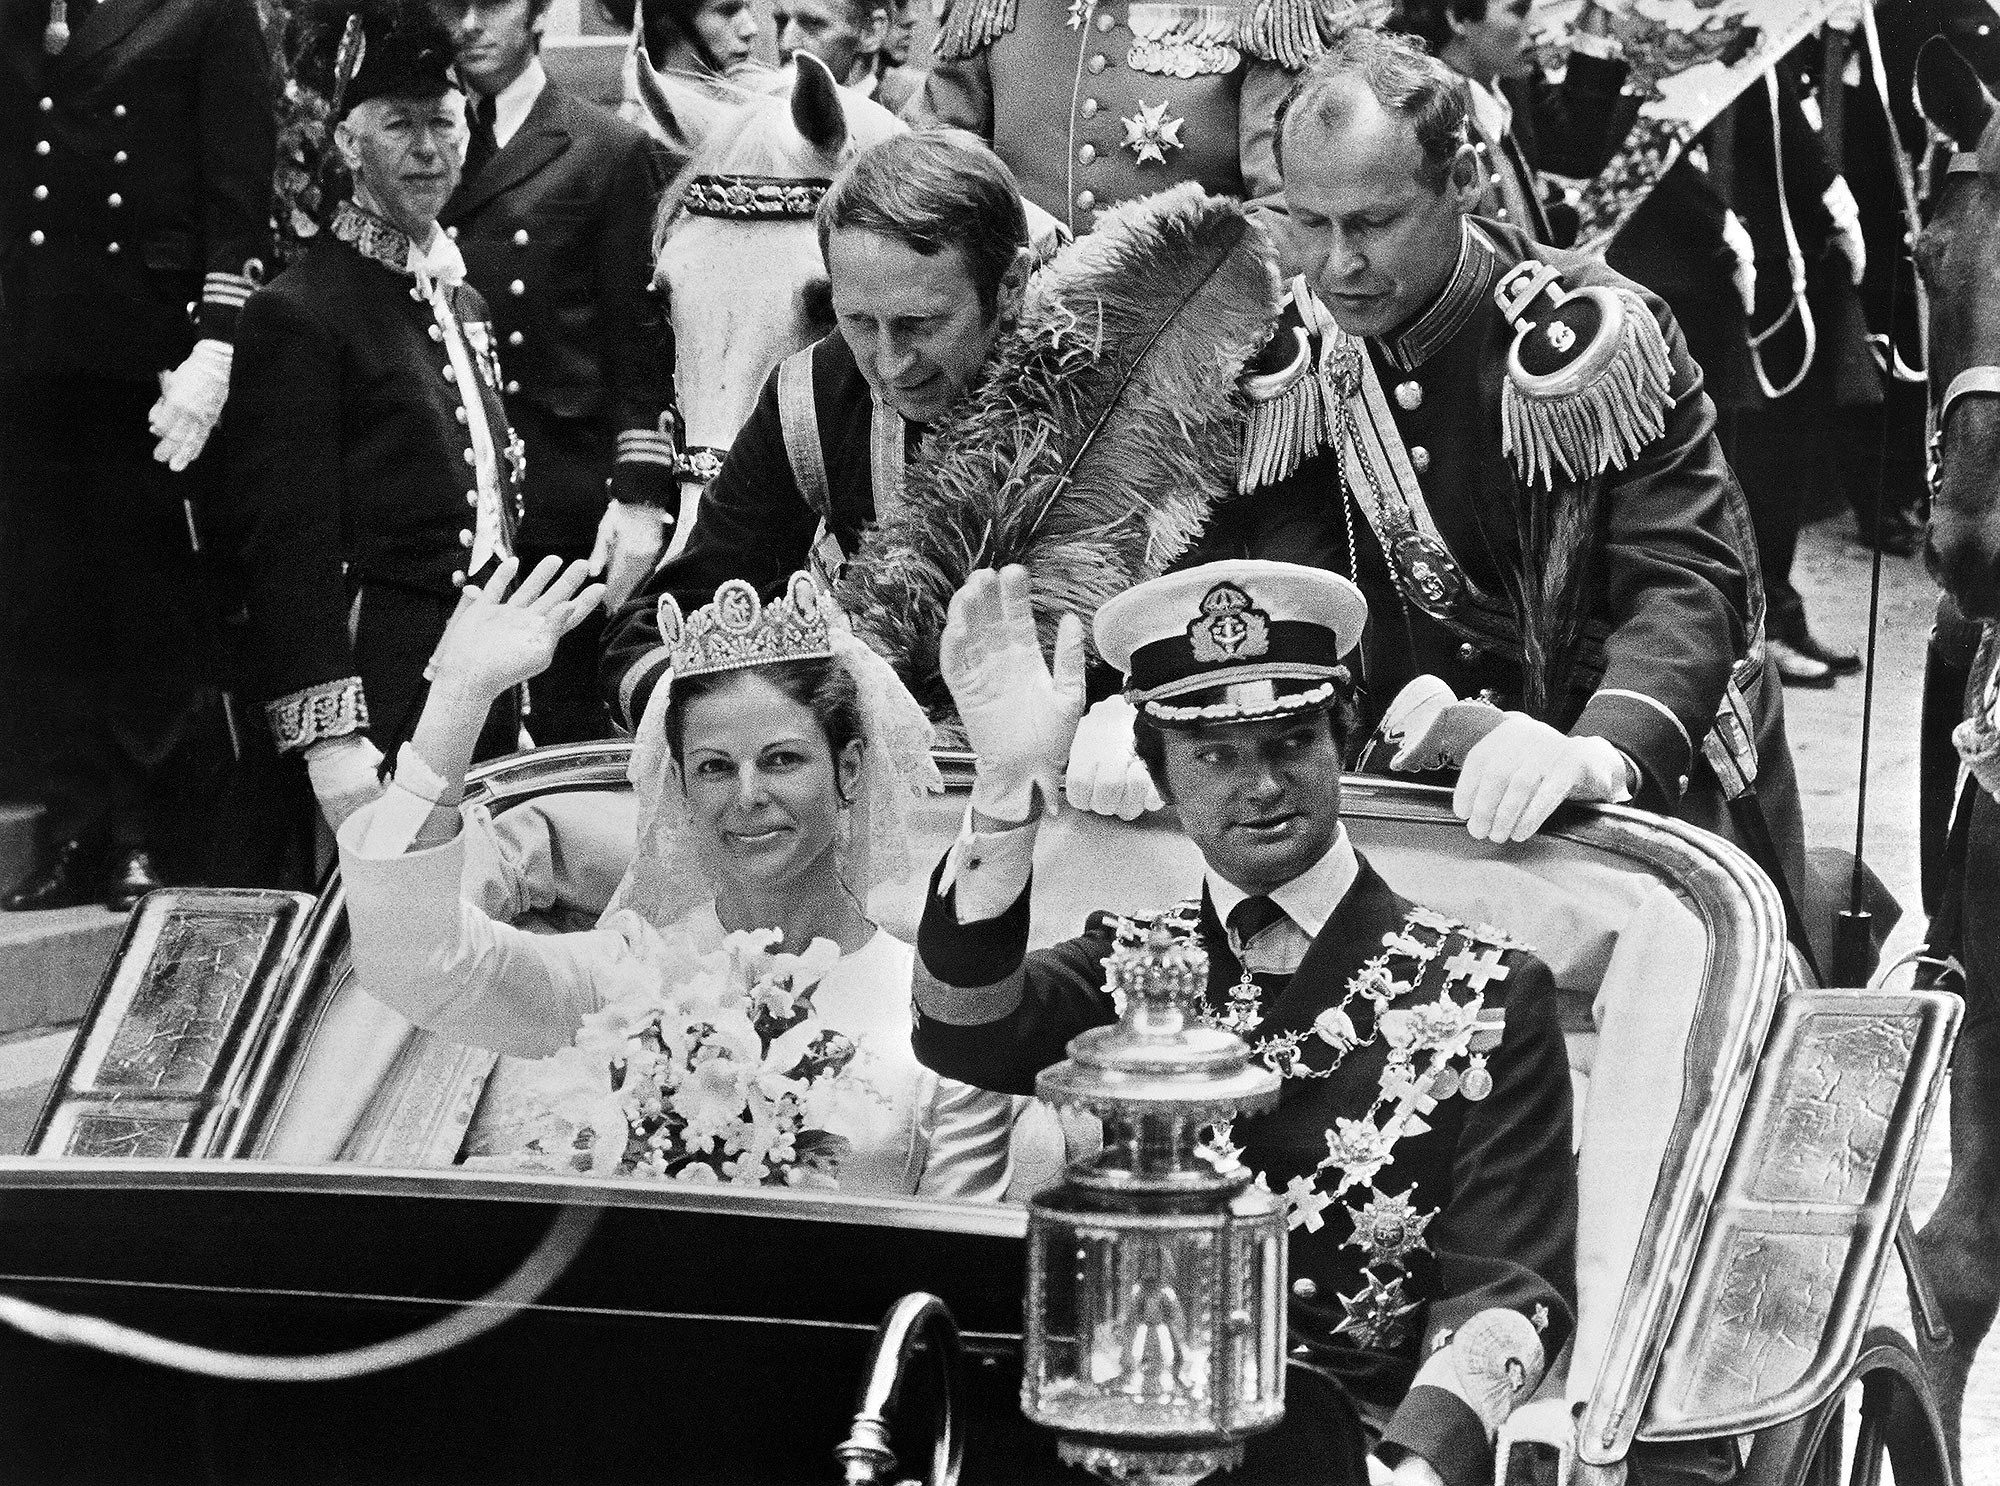 King Carl XVI Gustaf of Sweden and Miss